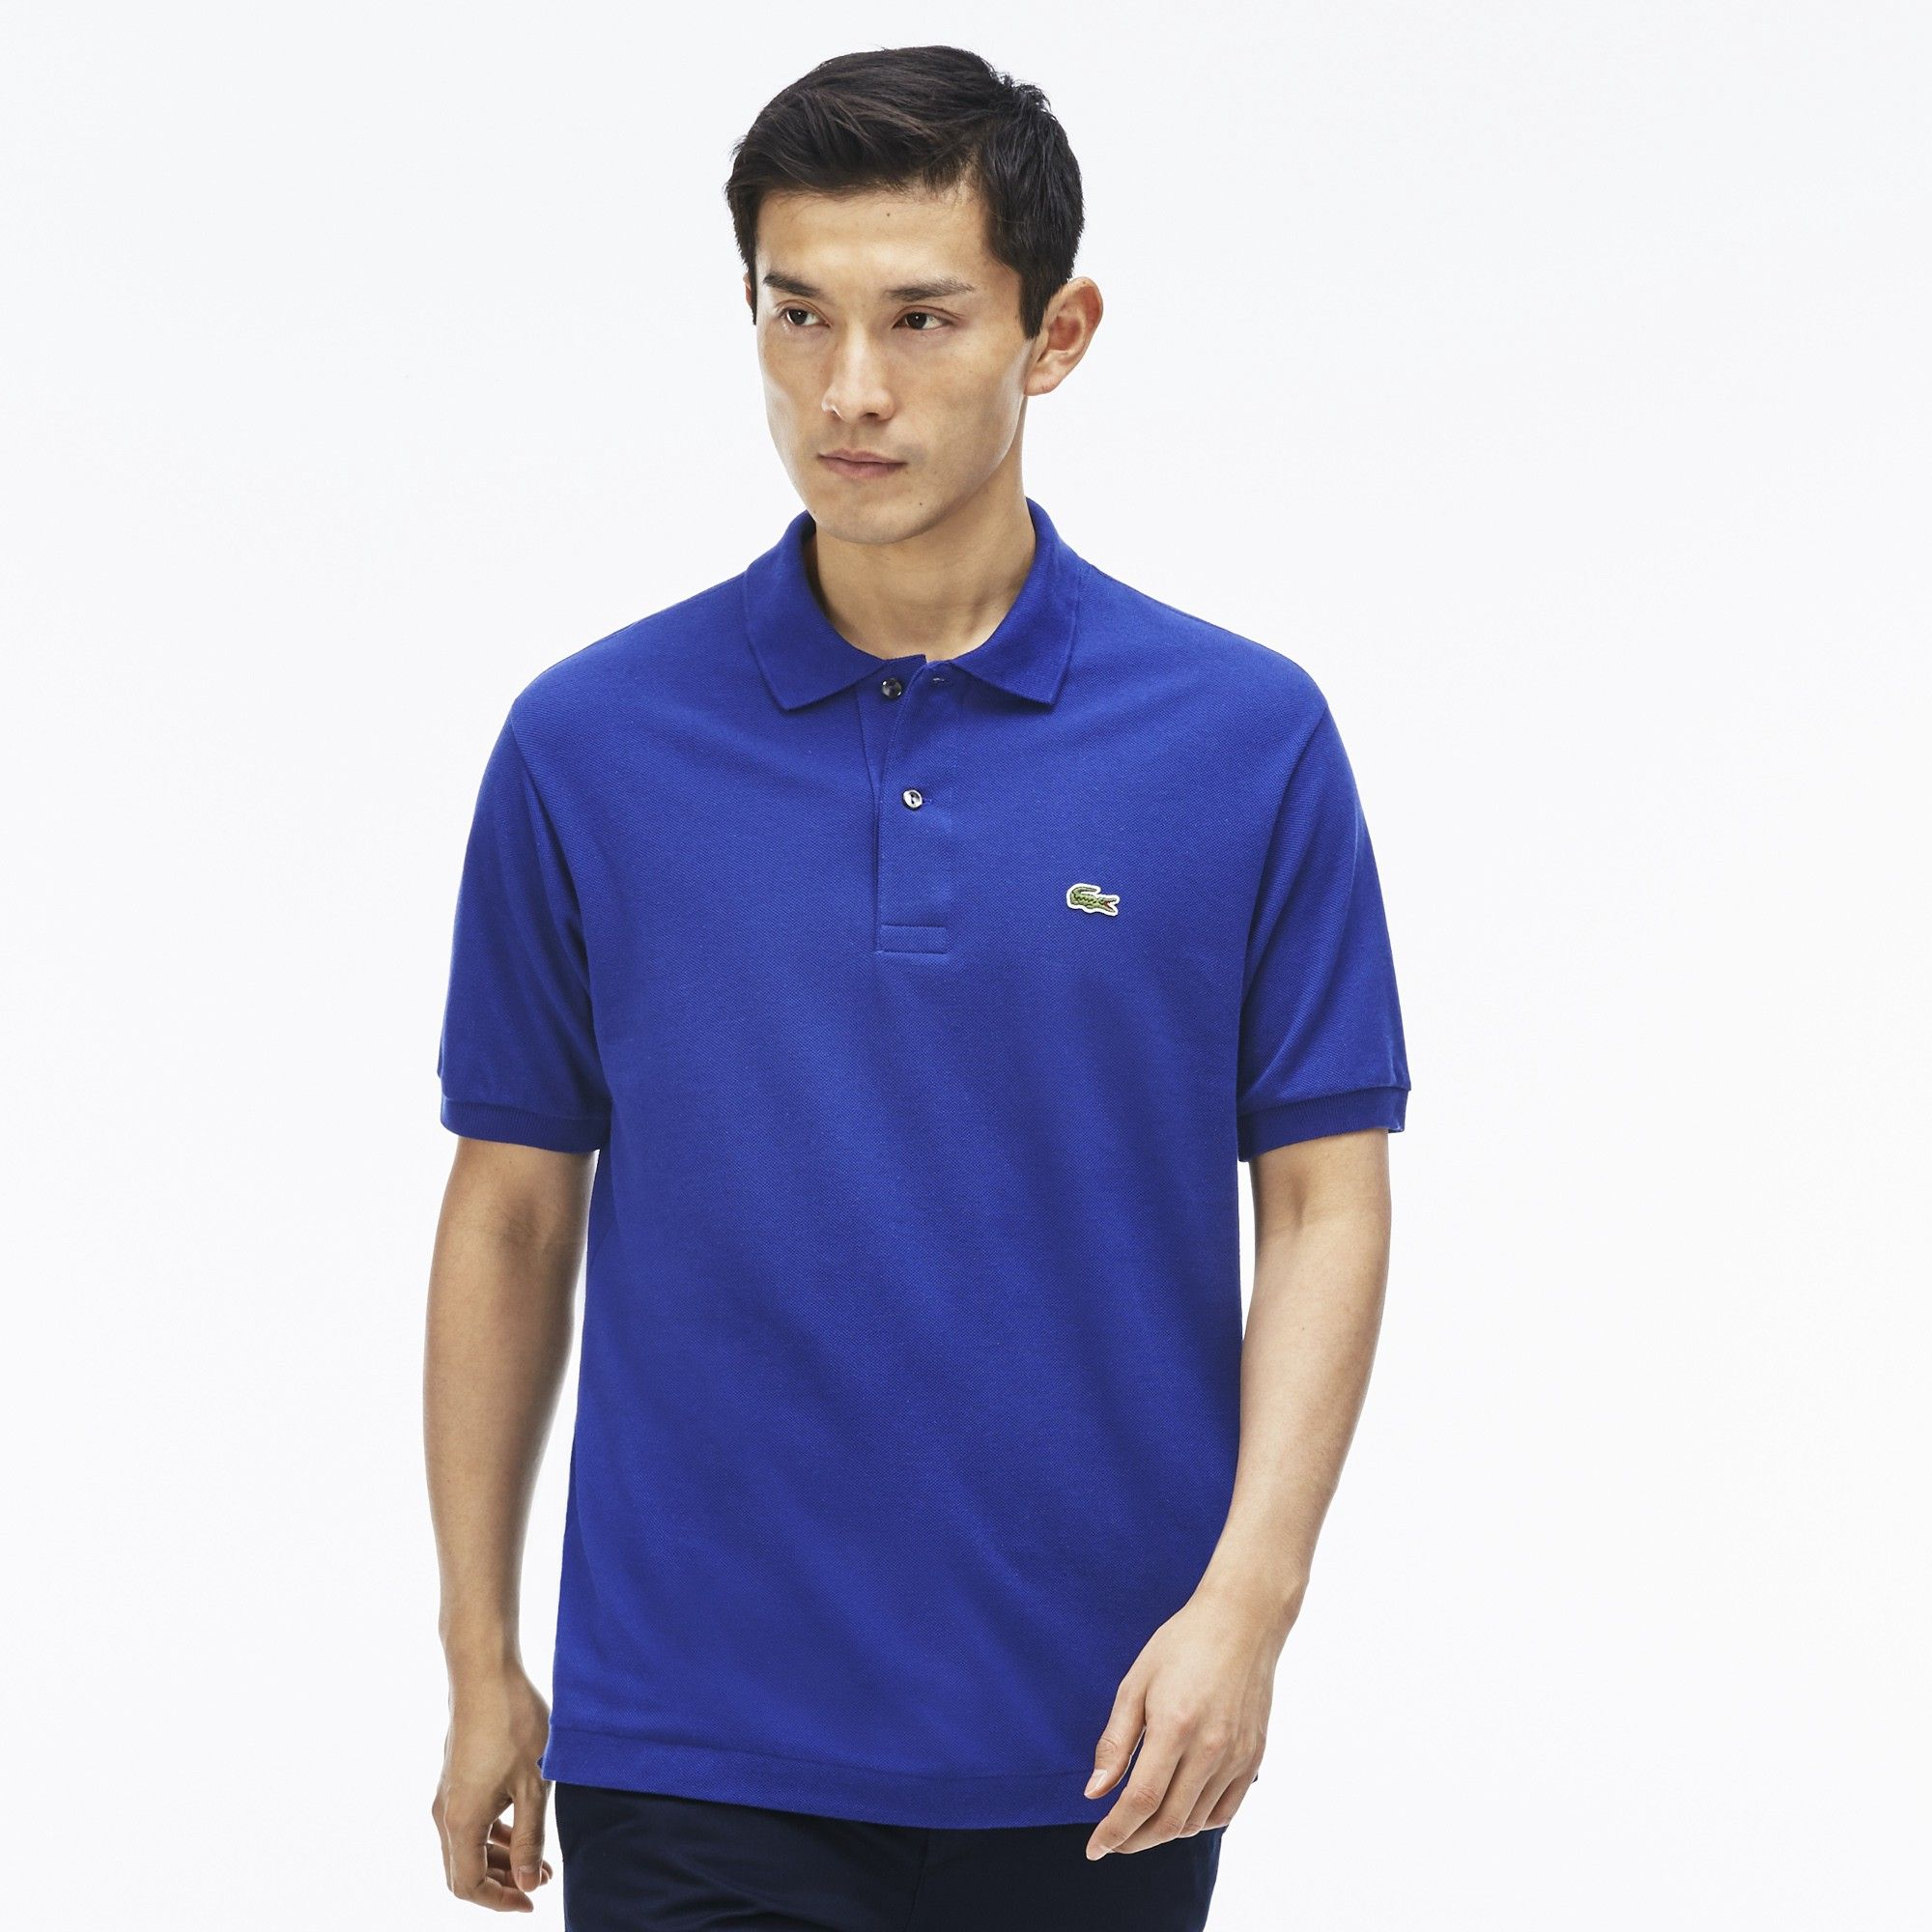 c444a9e0 LACOSTE Men's Classic Piqué L.12.12 Polo Shirt - varsity blue. #lacoste  #cloth #